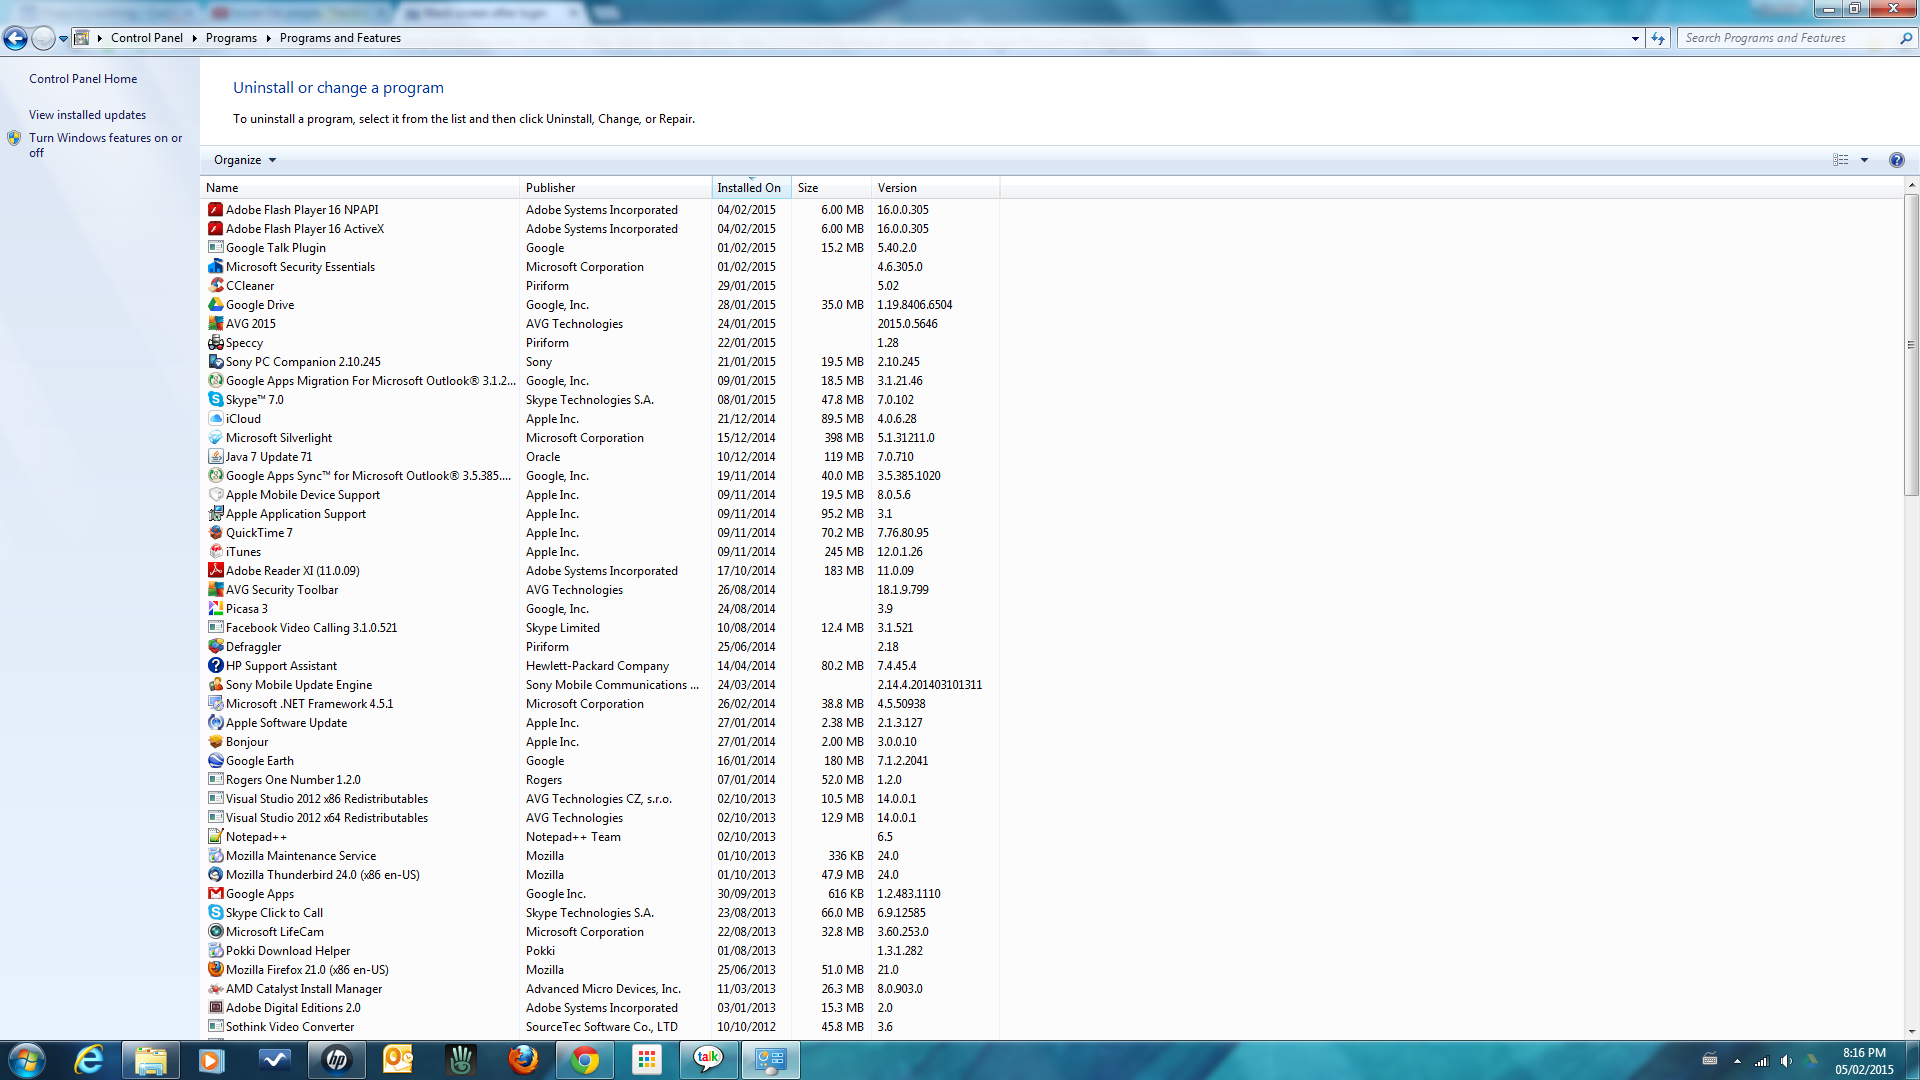 List of installed programs - latest first.